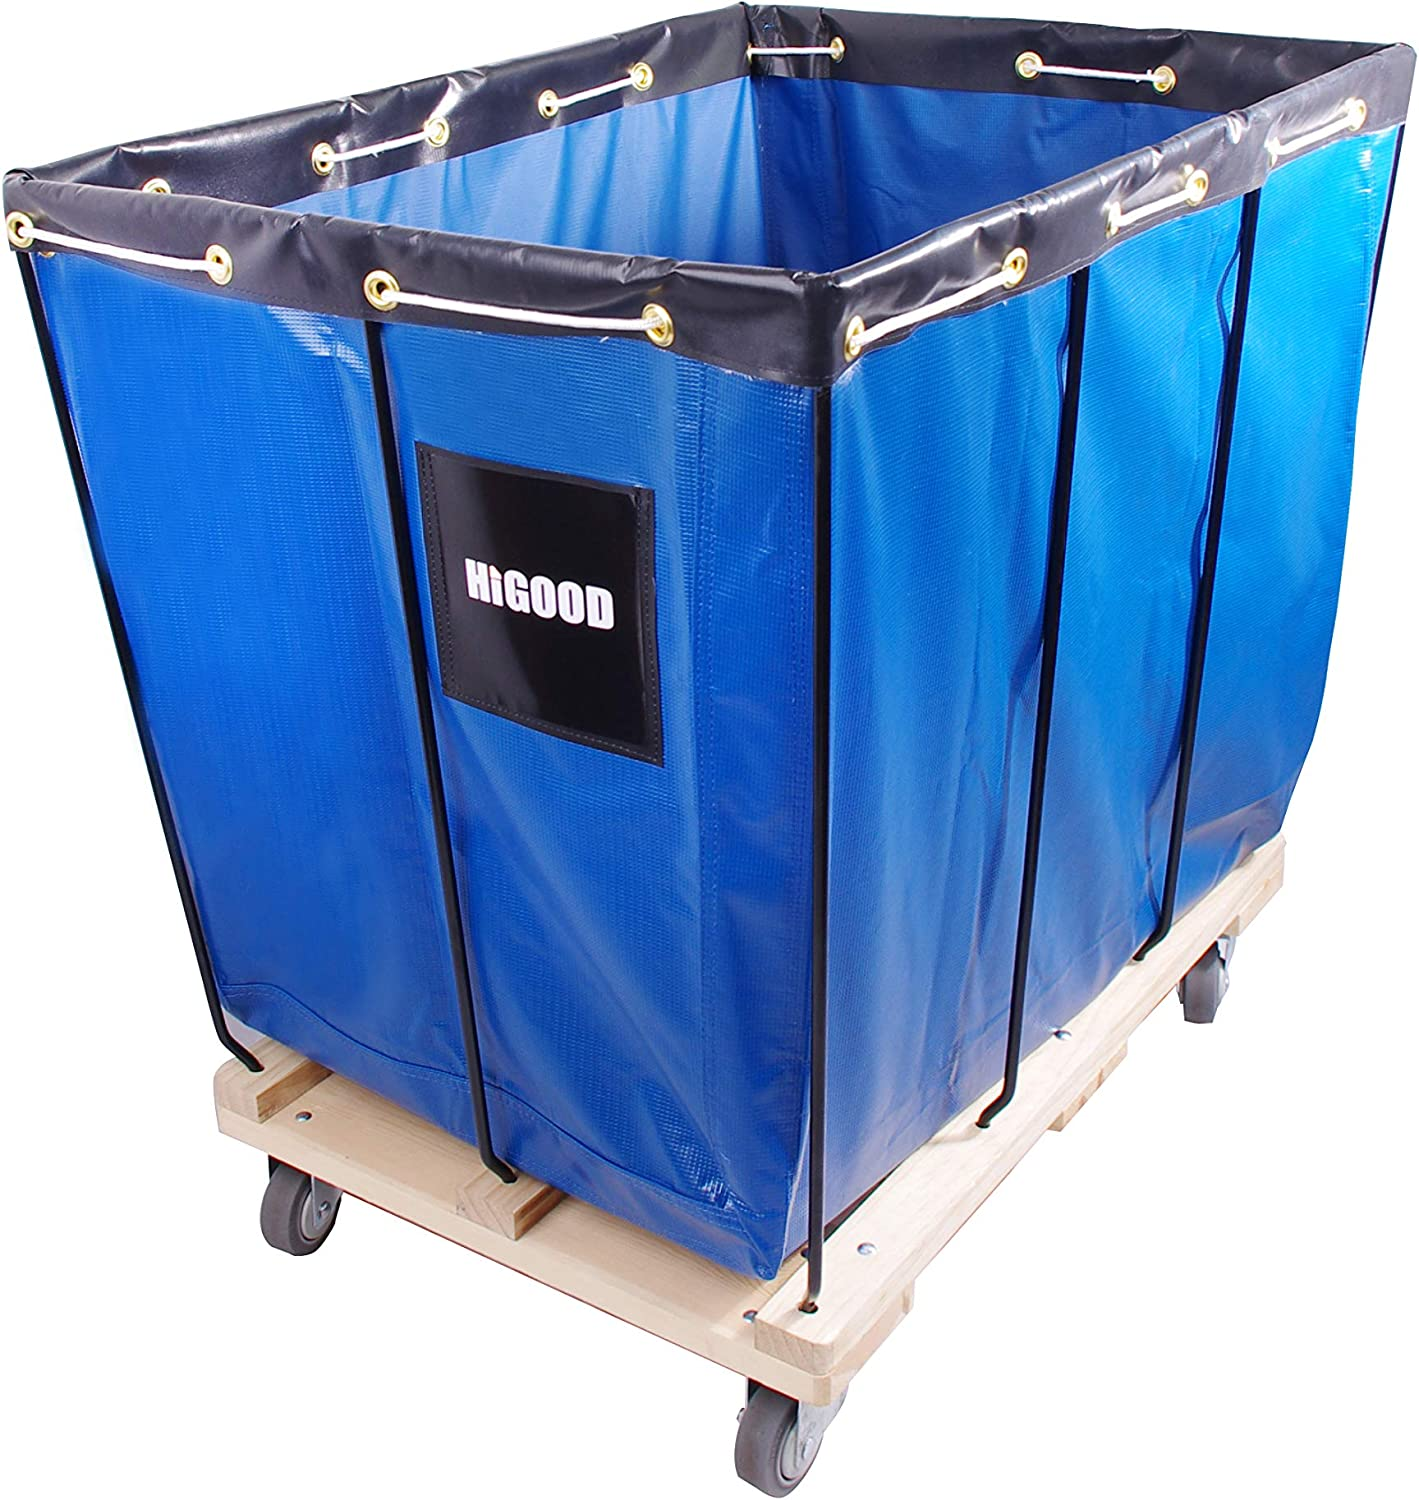 "HIGOOD Basket Trucks Blue 12 Bushel Knock Down Truck, 15.0 cu. ft, 600 lb, 36""L X 26""W X 34""H Capacity"